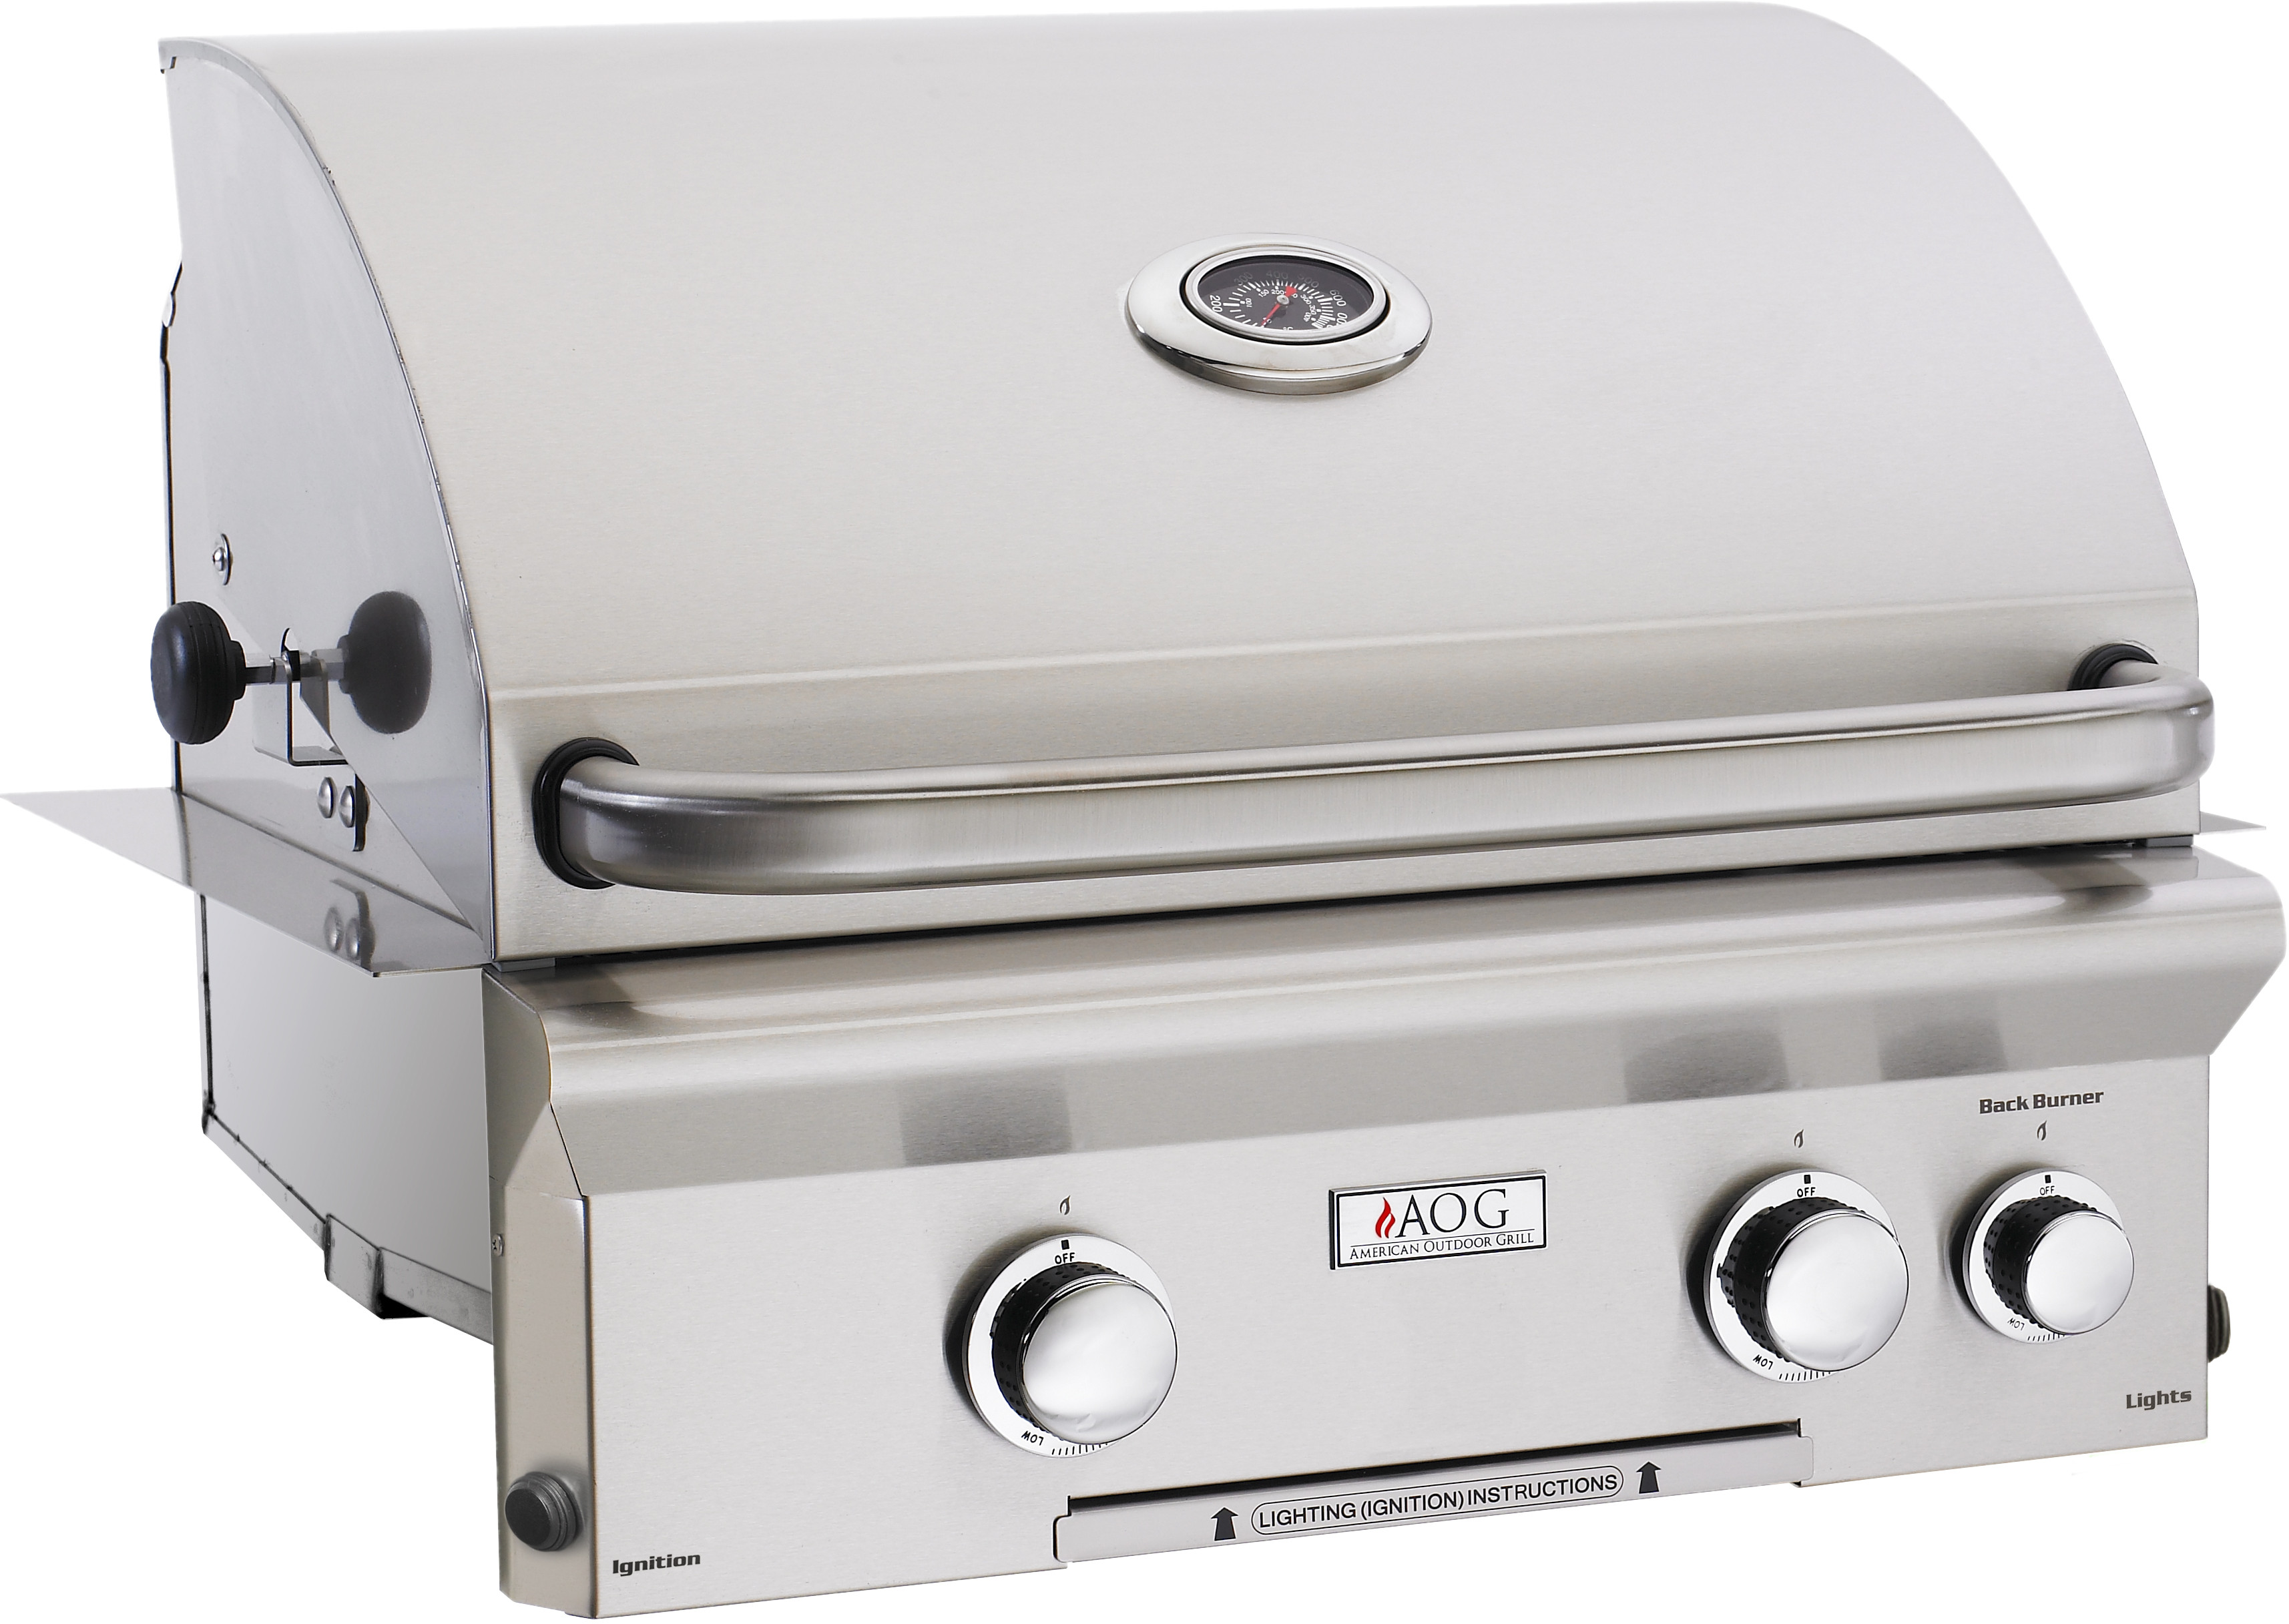 American Outdoor Grill sseries Built In Barbecue Grill Stainless Steel 24NBL00SP